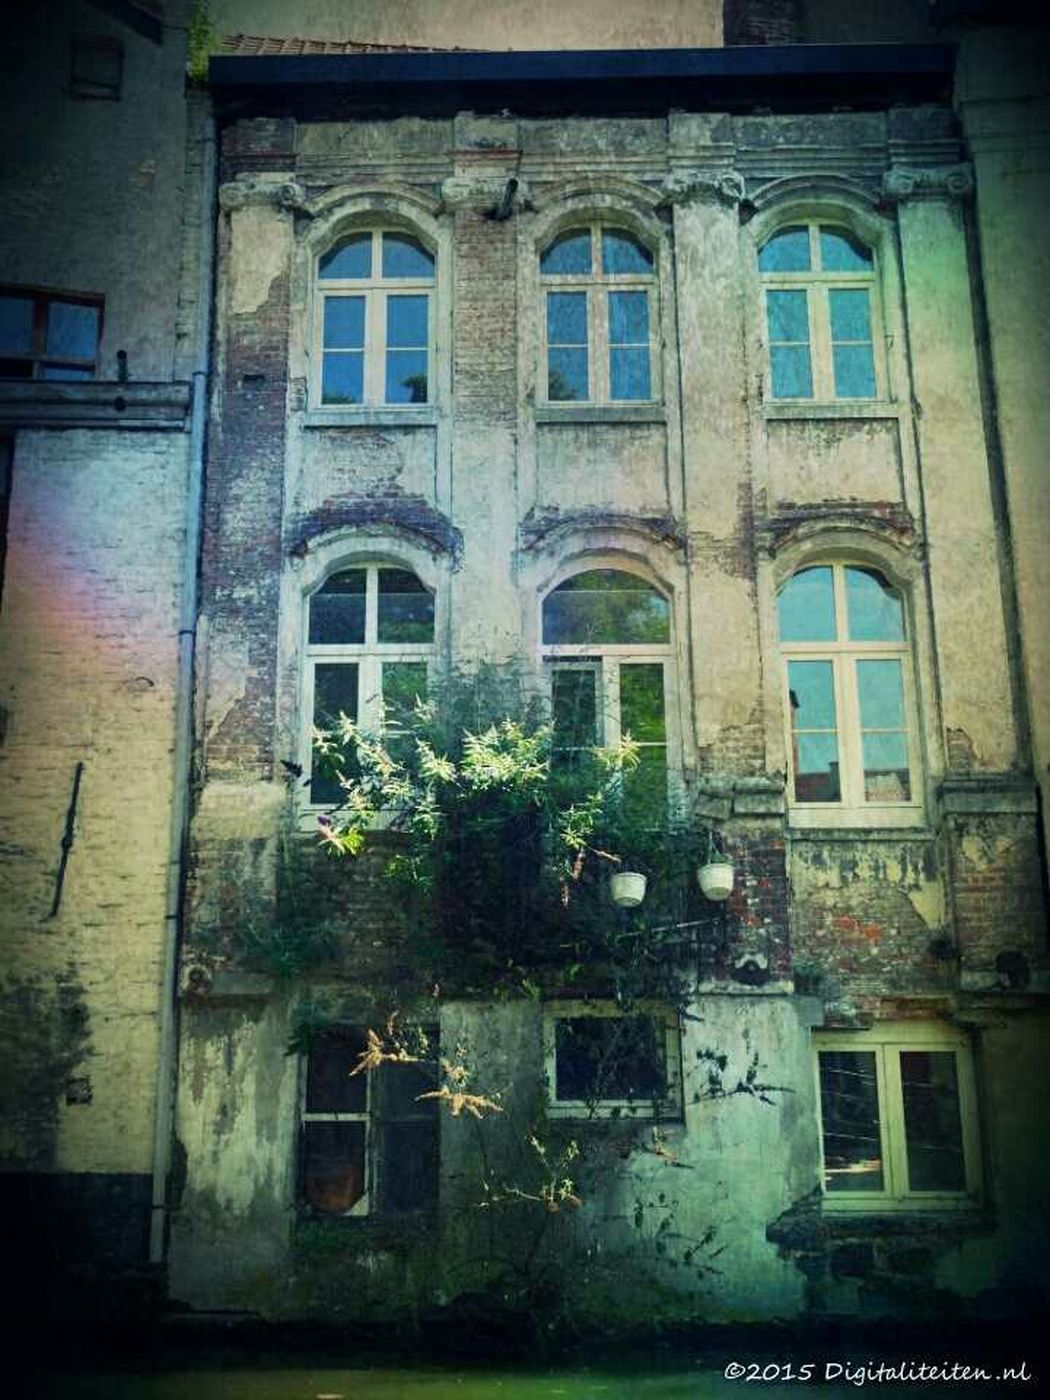 On a Canal Boat in Gent, Belgium Unesco Old Buildings Mobile Art Painterly